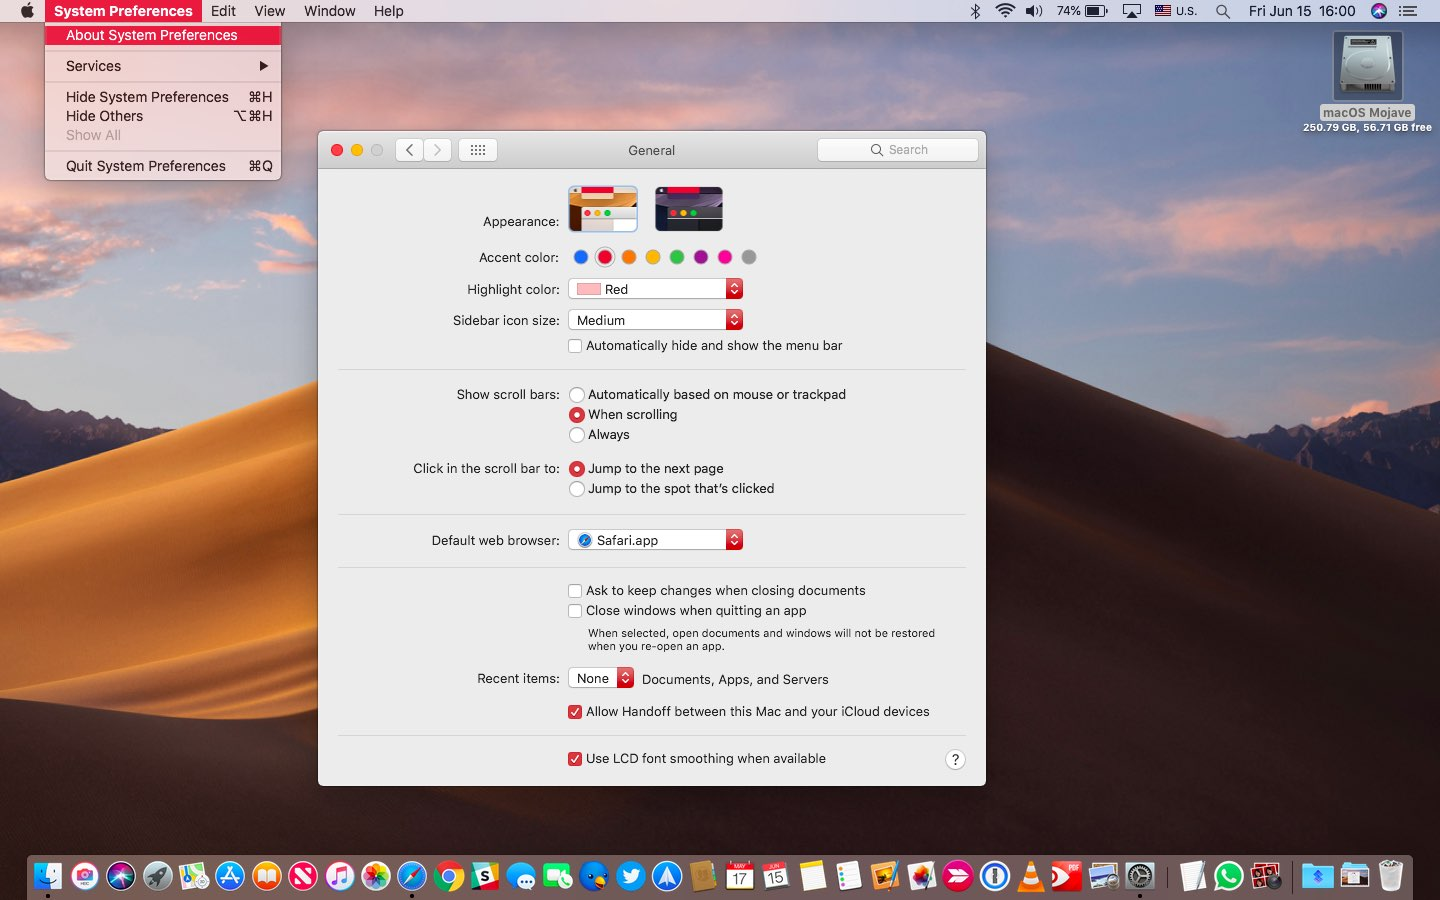 macOS Mojave Light Mode with the red accent and highlight color